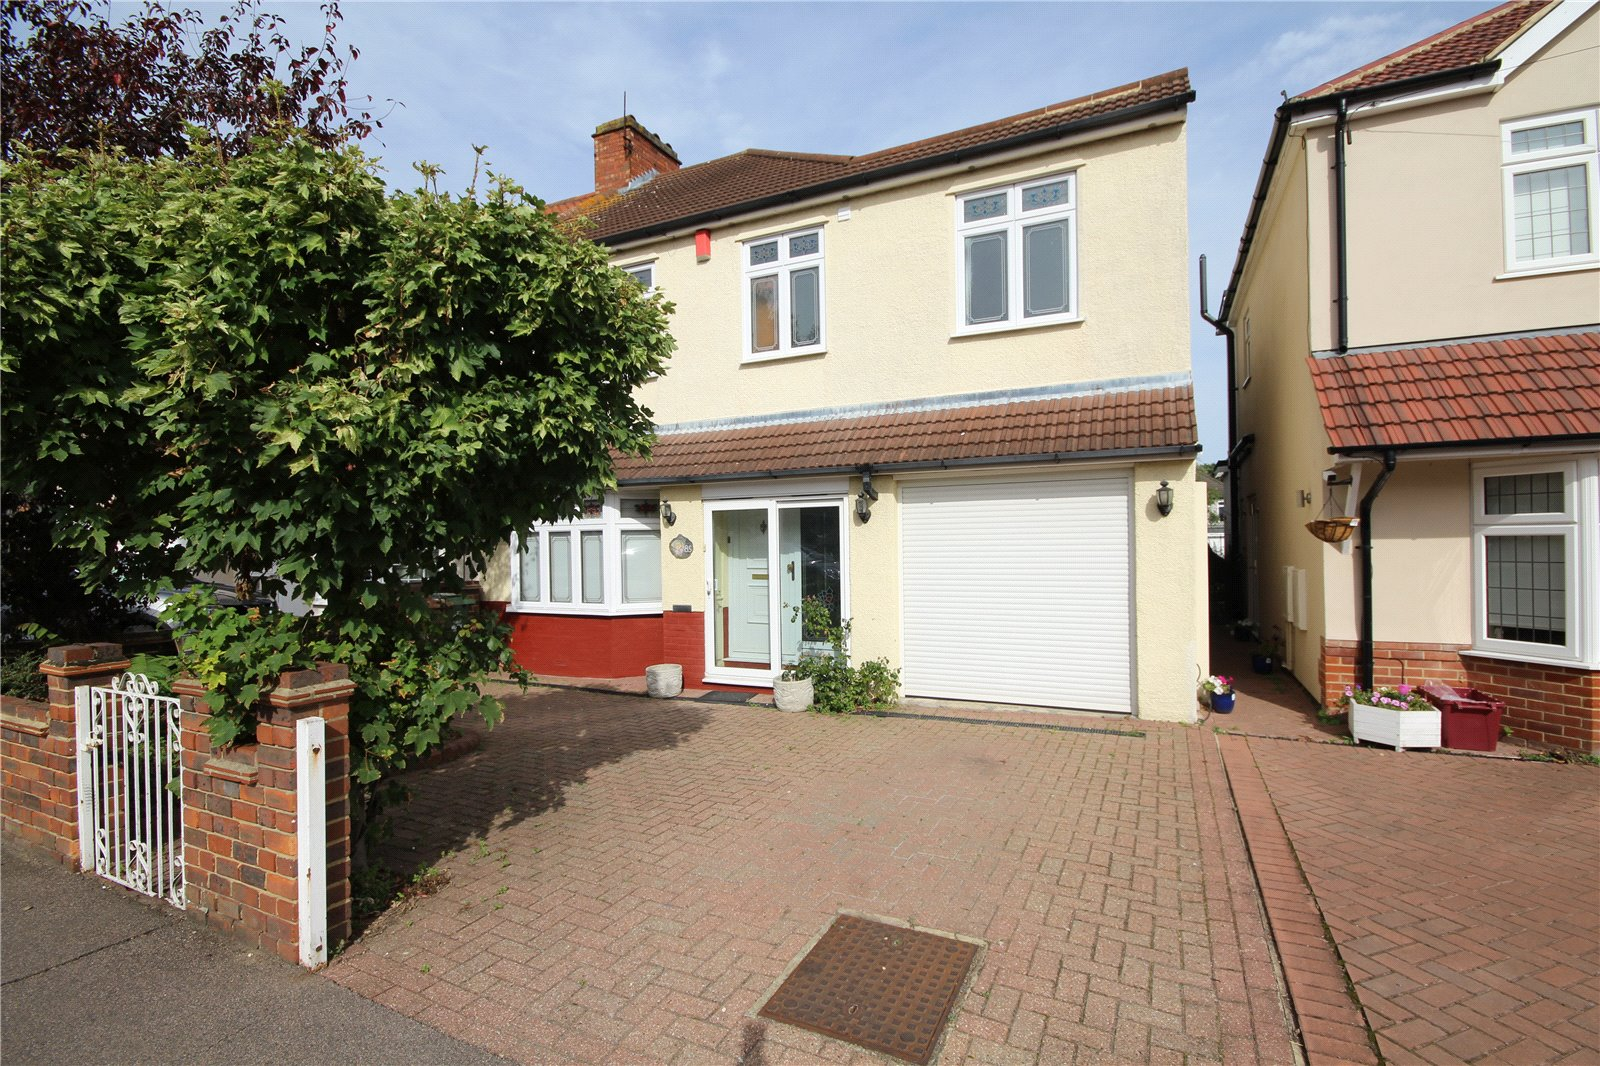 Danson Crescent, South Welling, Kent, DA16